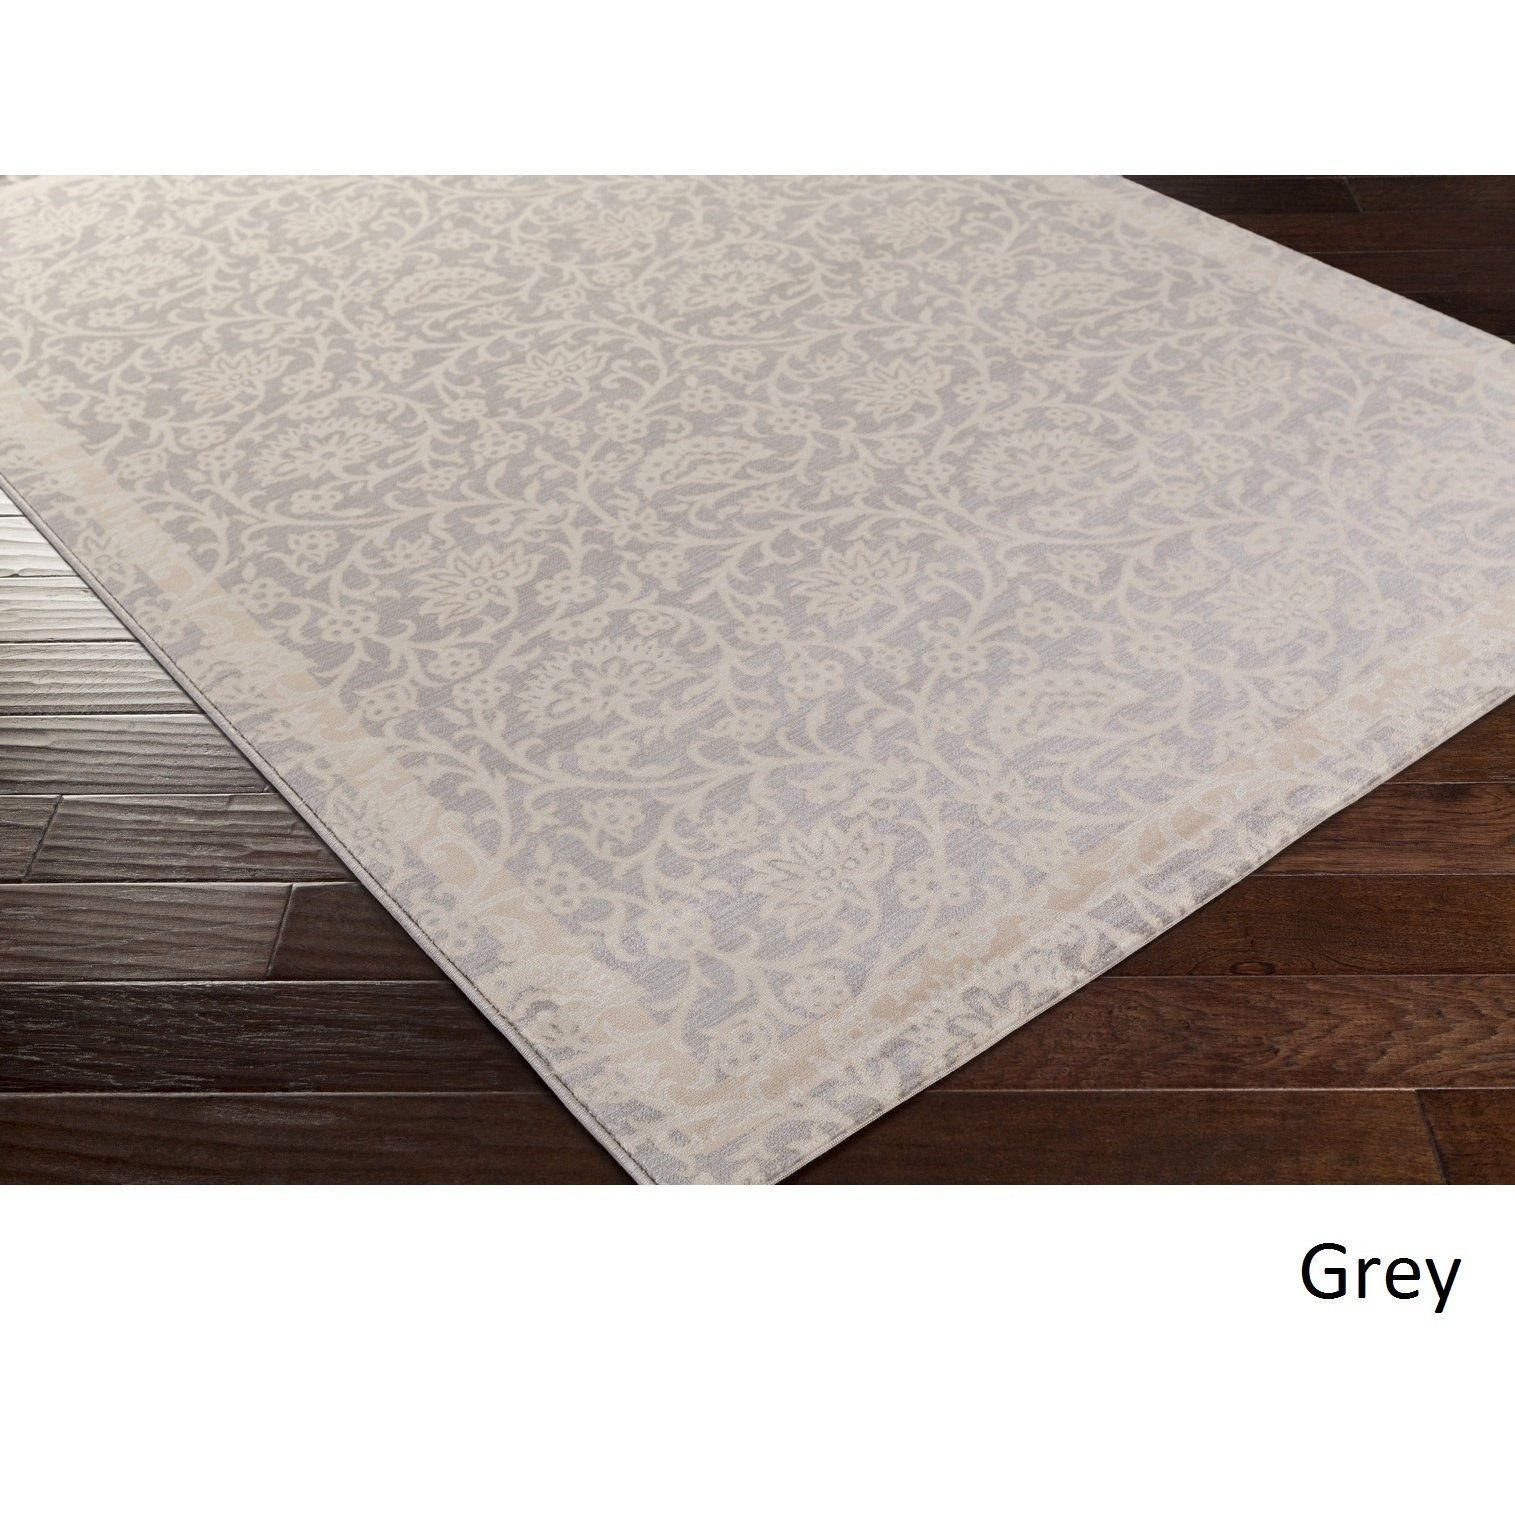 Meticulously Woven Melrose Rug (7'8 x 10'6) (